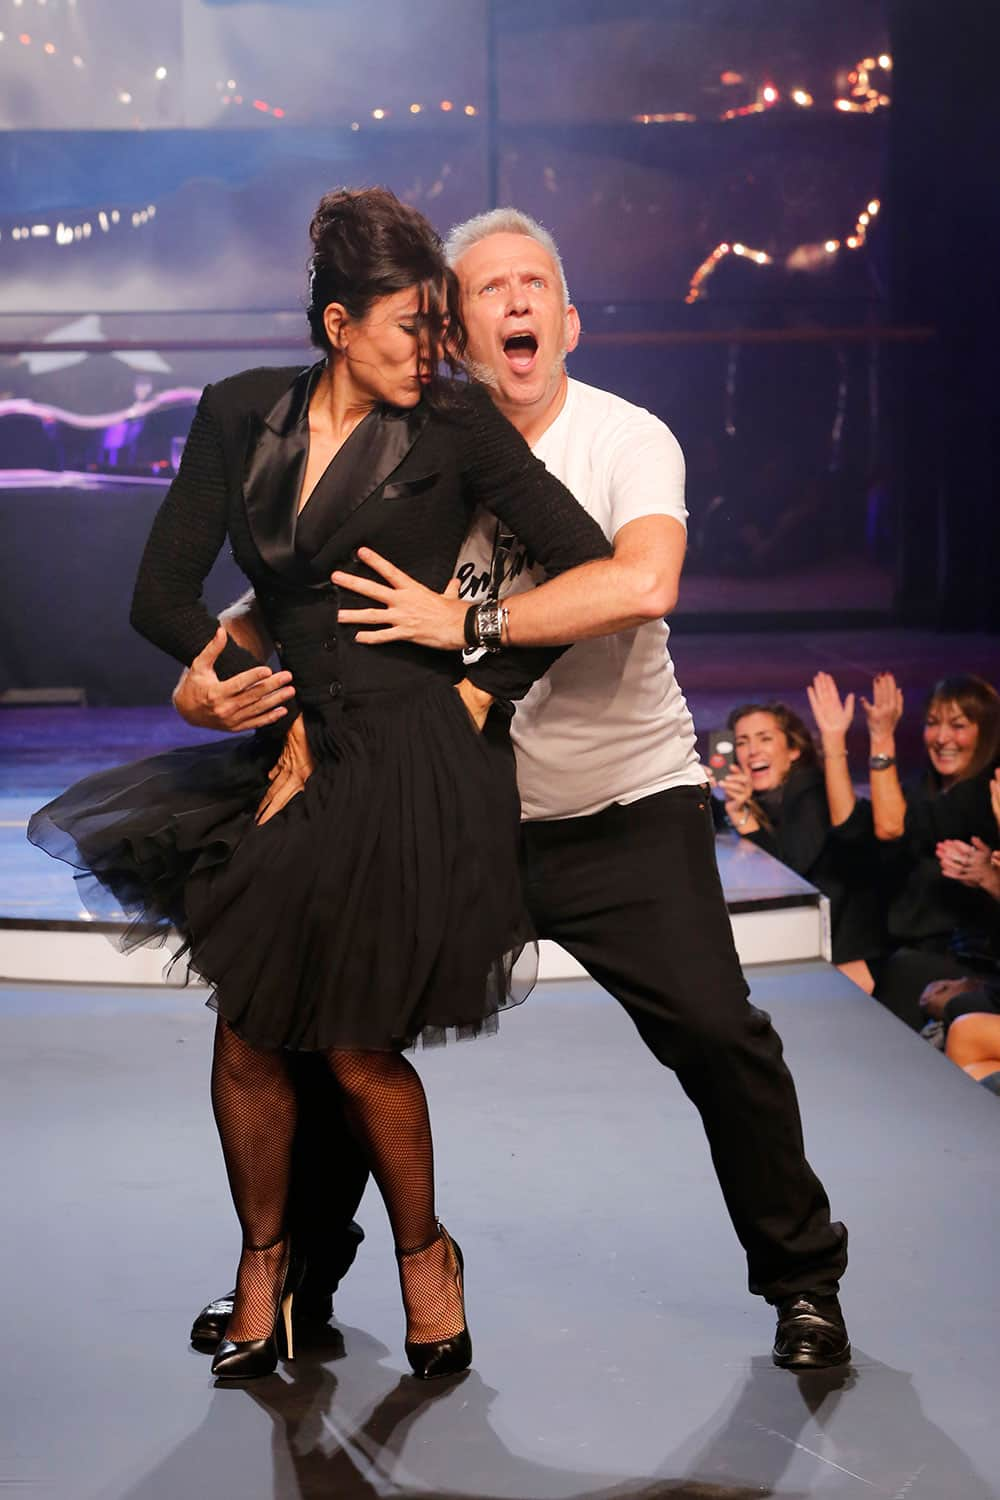 Fashion designer Jean-Paul Gaultier, right, and choreographer Blanca Li perform a dance, following the presentation of Gaultier`s ready-to-wear Spring/Summer 2014 fashion collection.